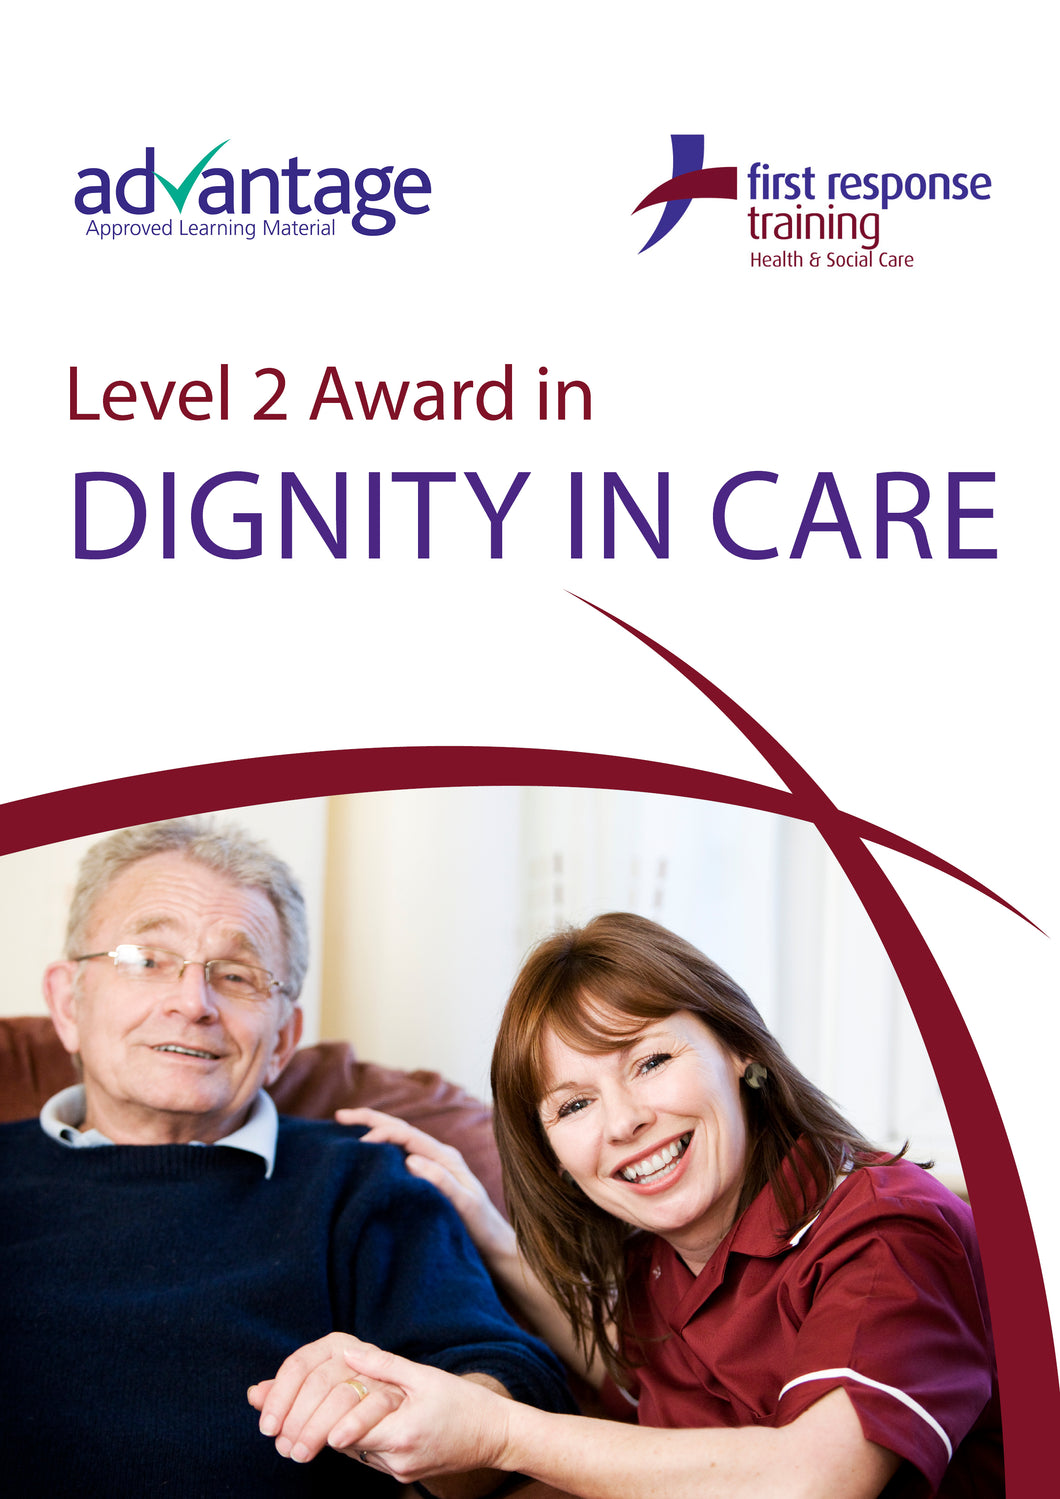 Level 2 Award in Dignity in Care